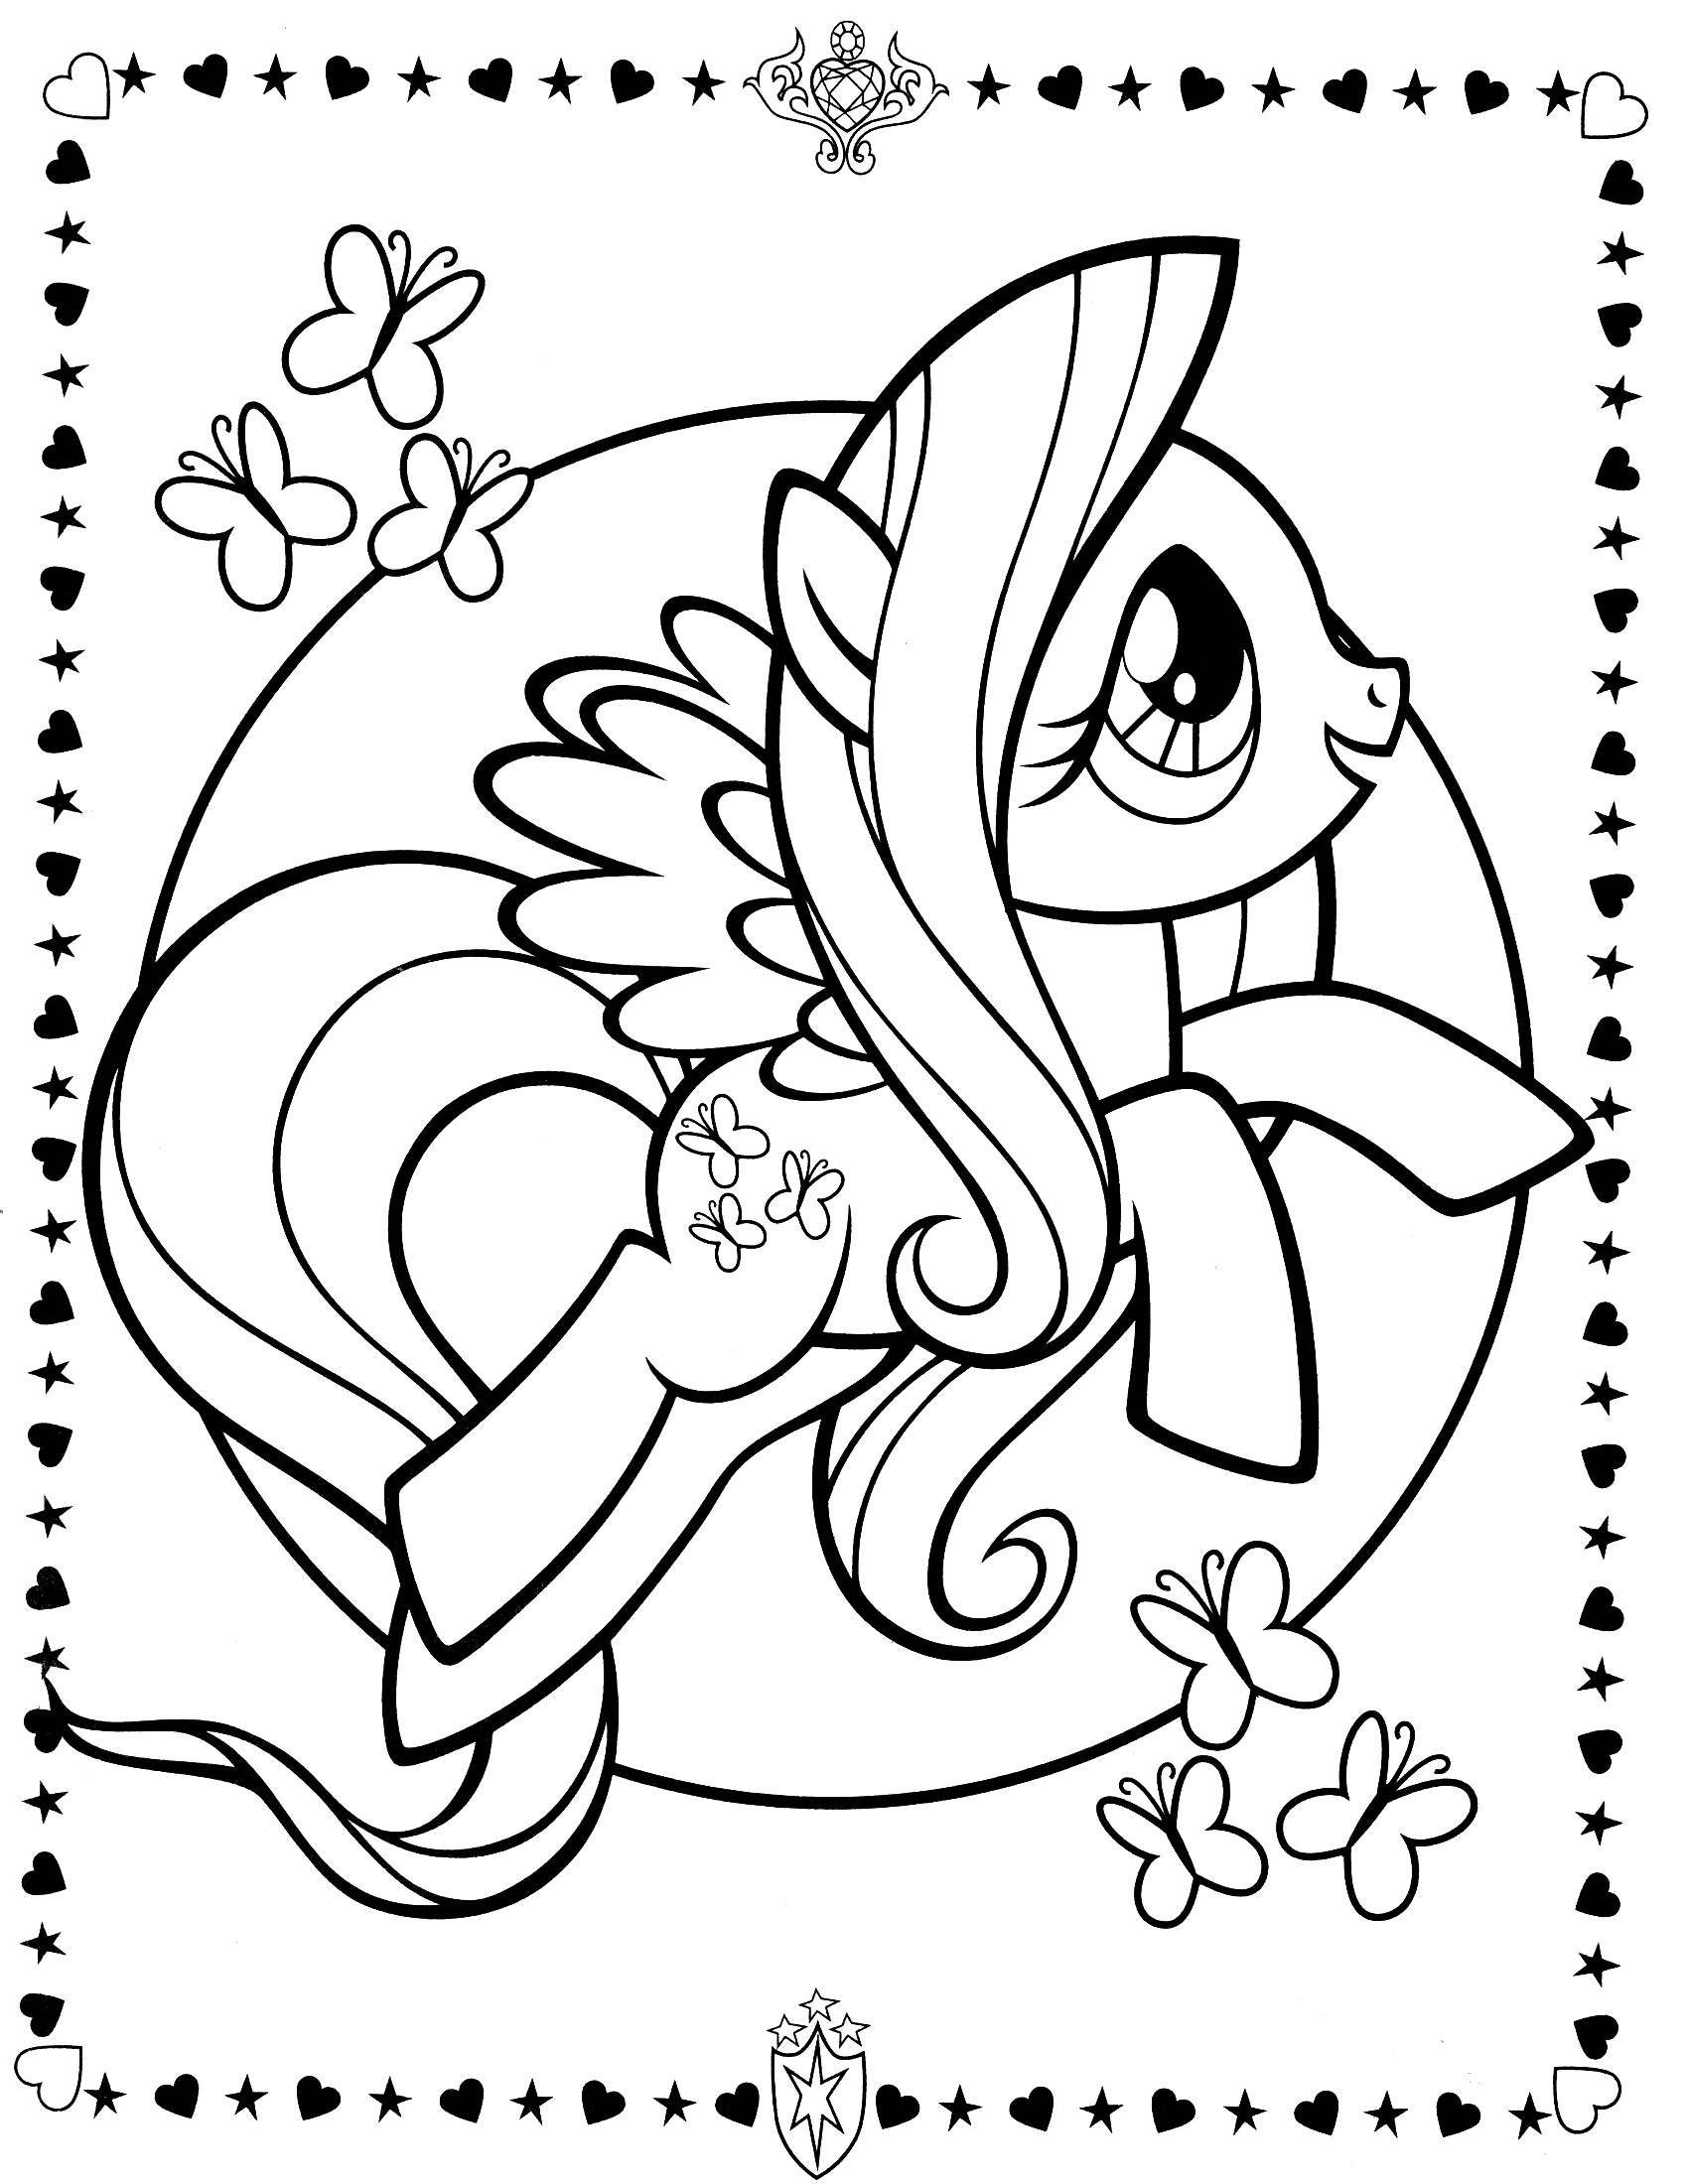 My Little ポニー Colouring Sheets - Fluttershy